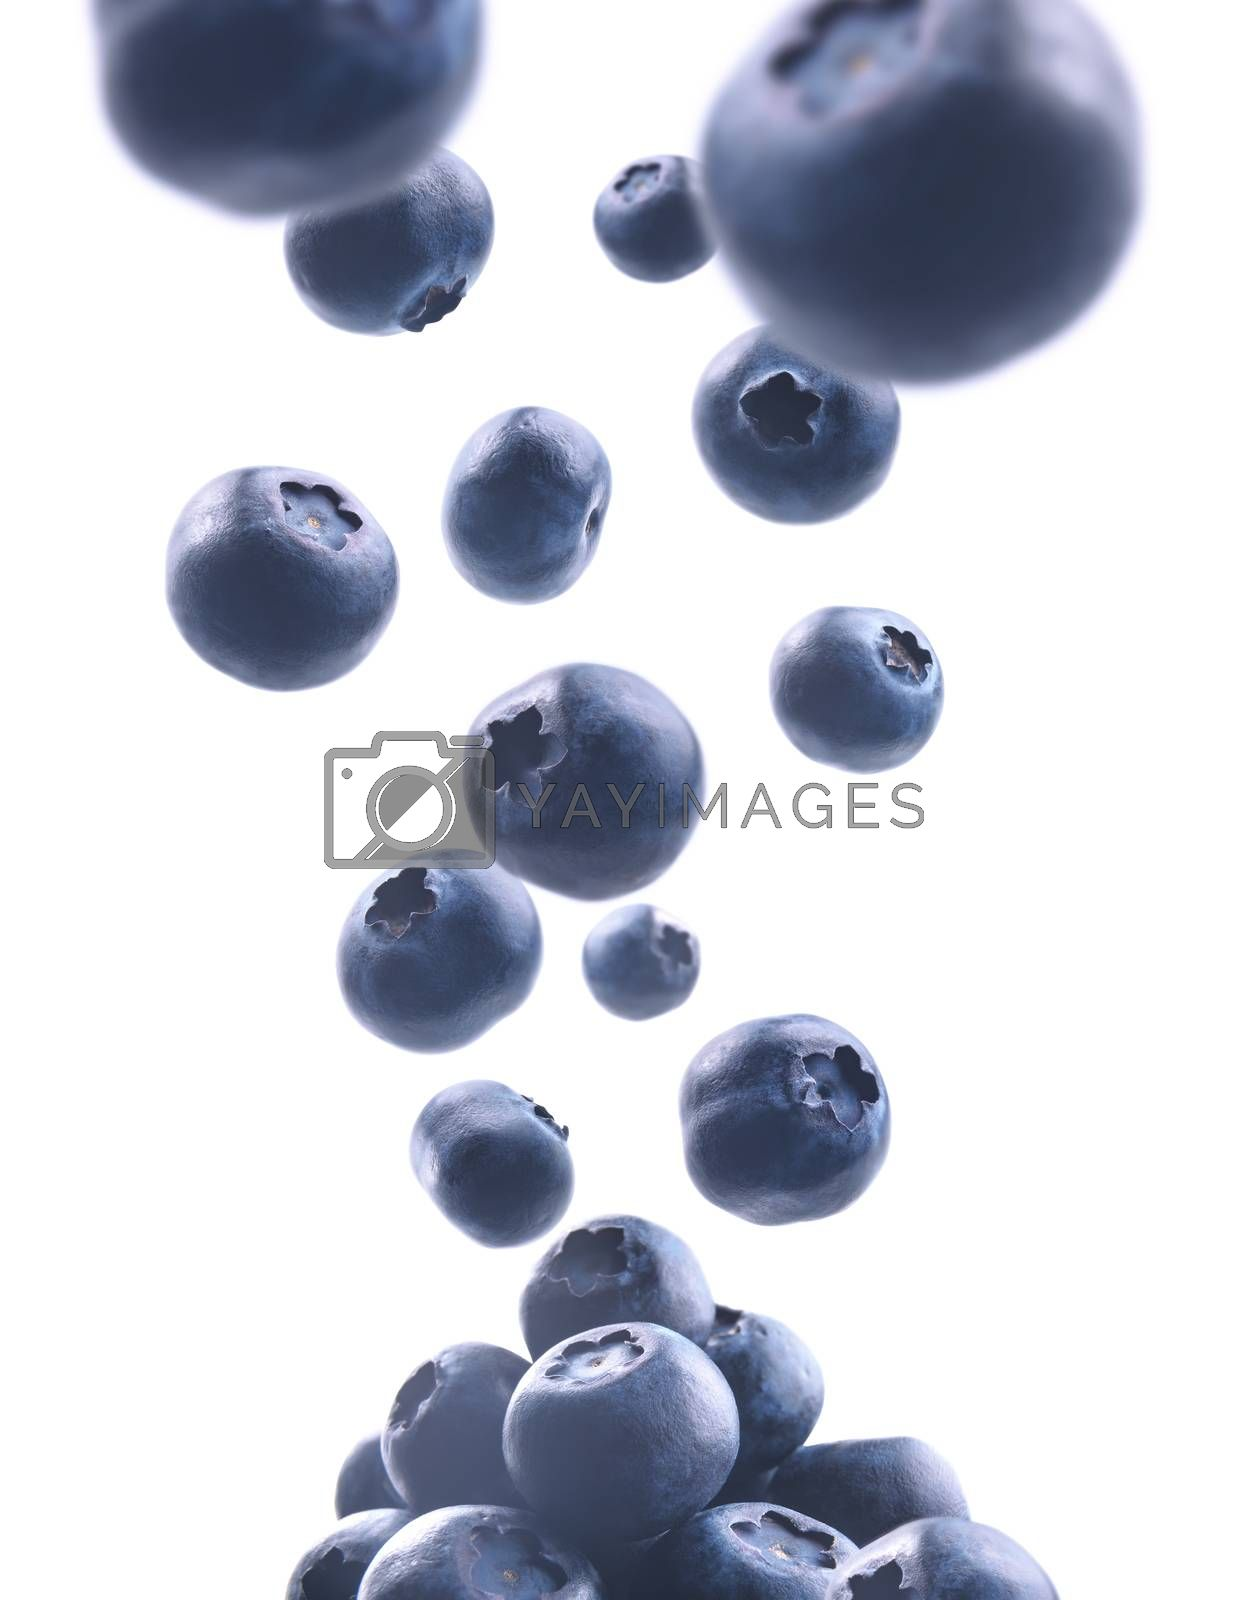 Ripe blueberries levitate on a white background by butenkow